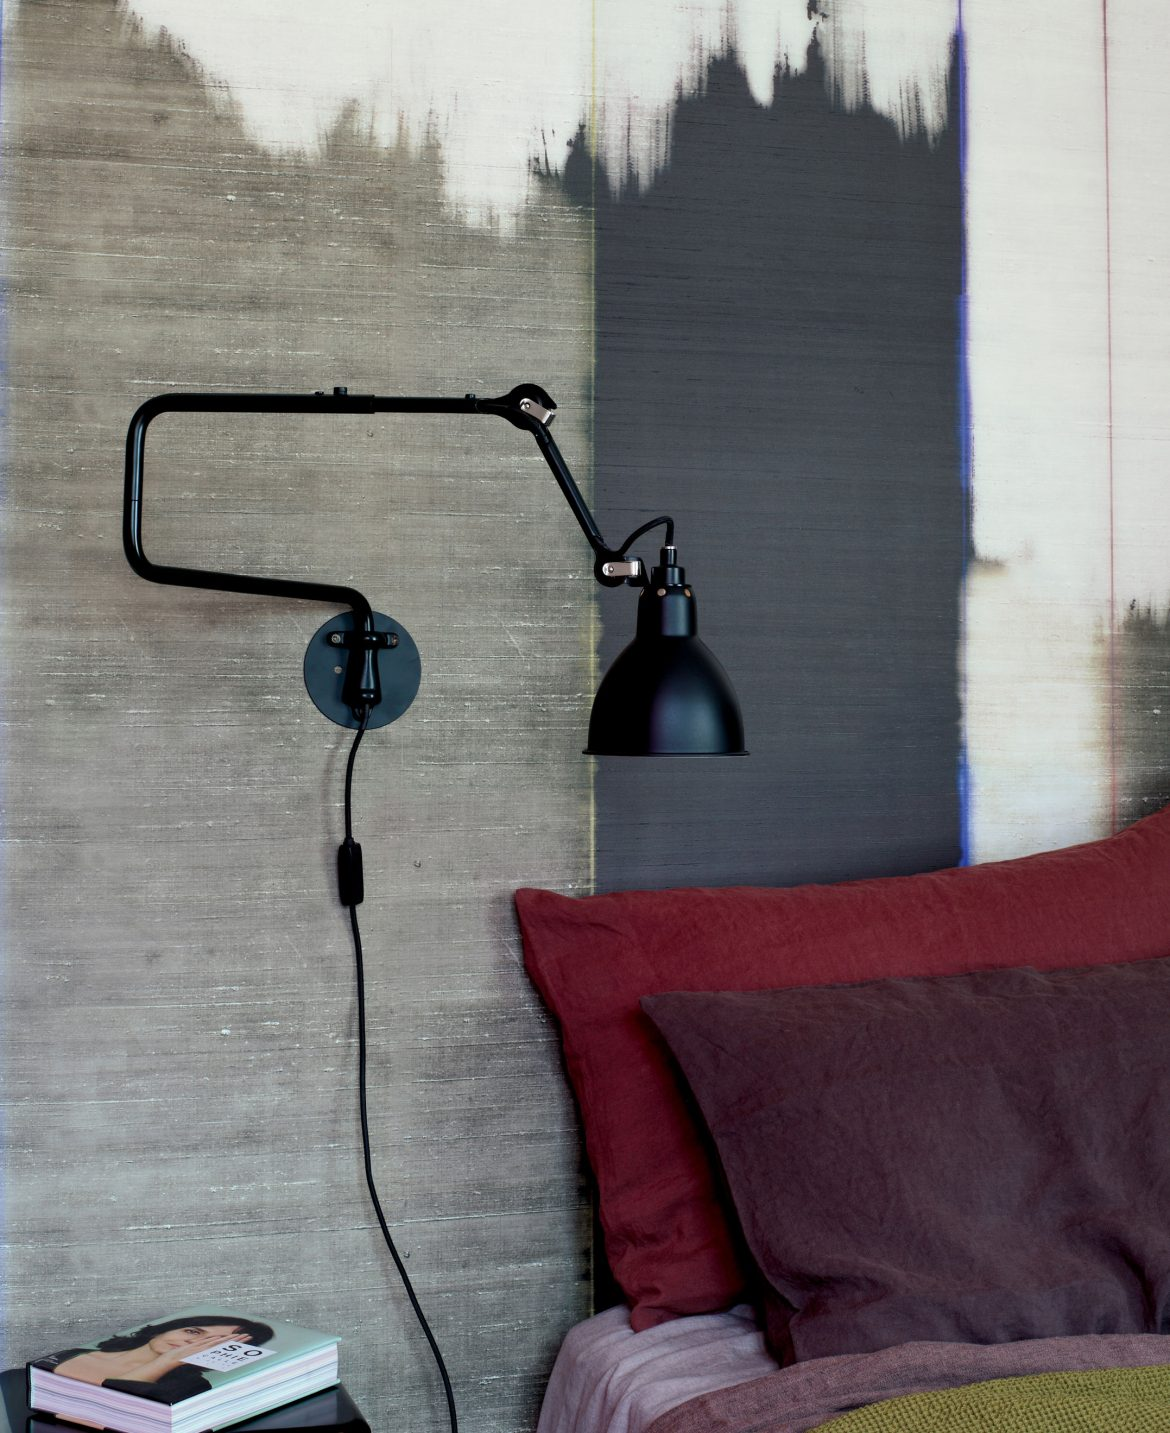 Luminaire Saint Martin D Heres bedroom colors ideas